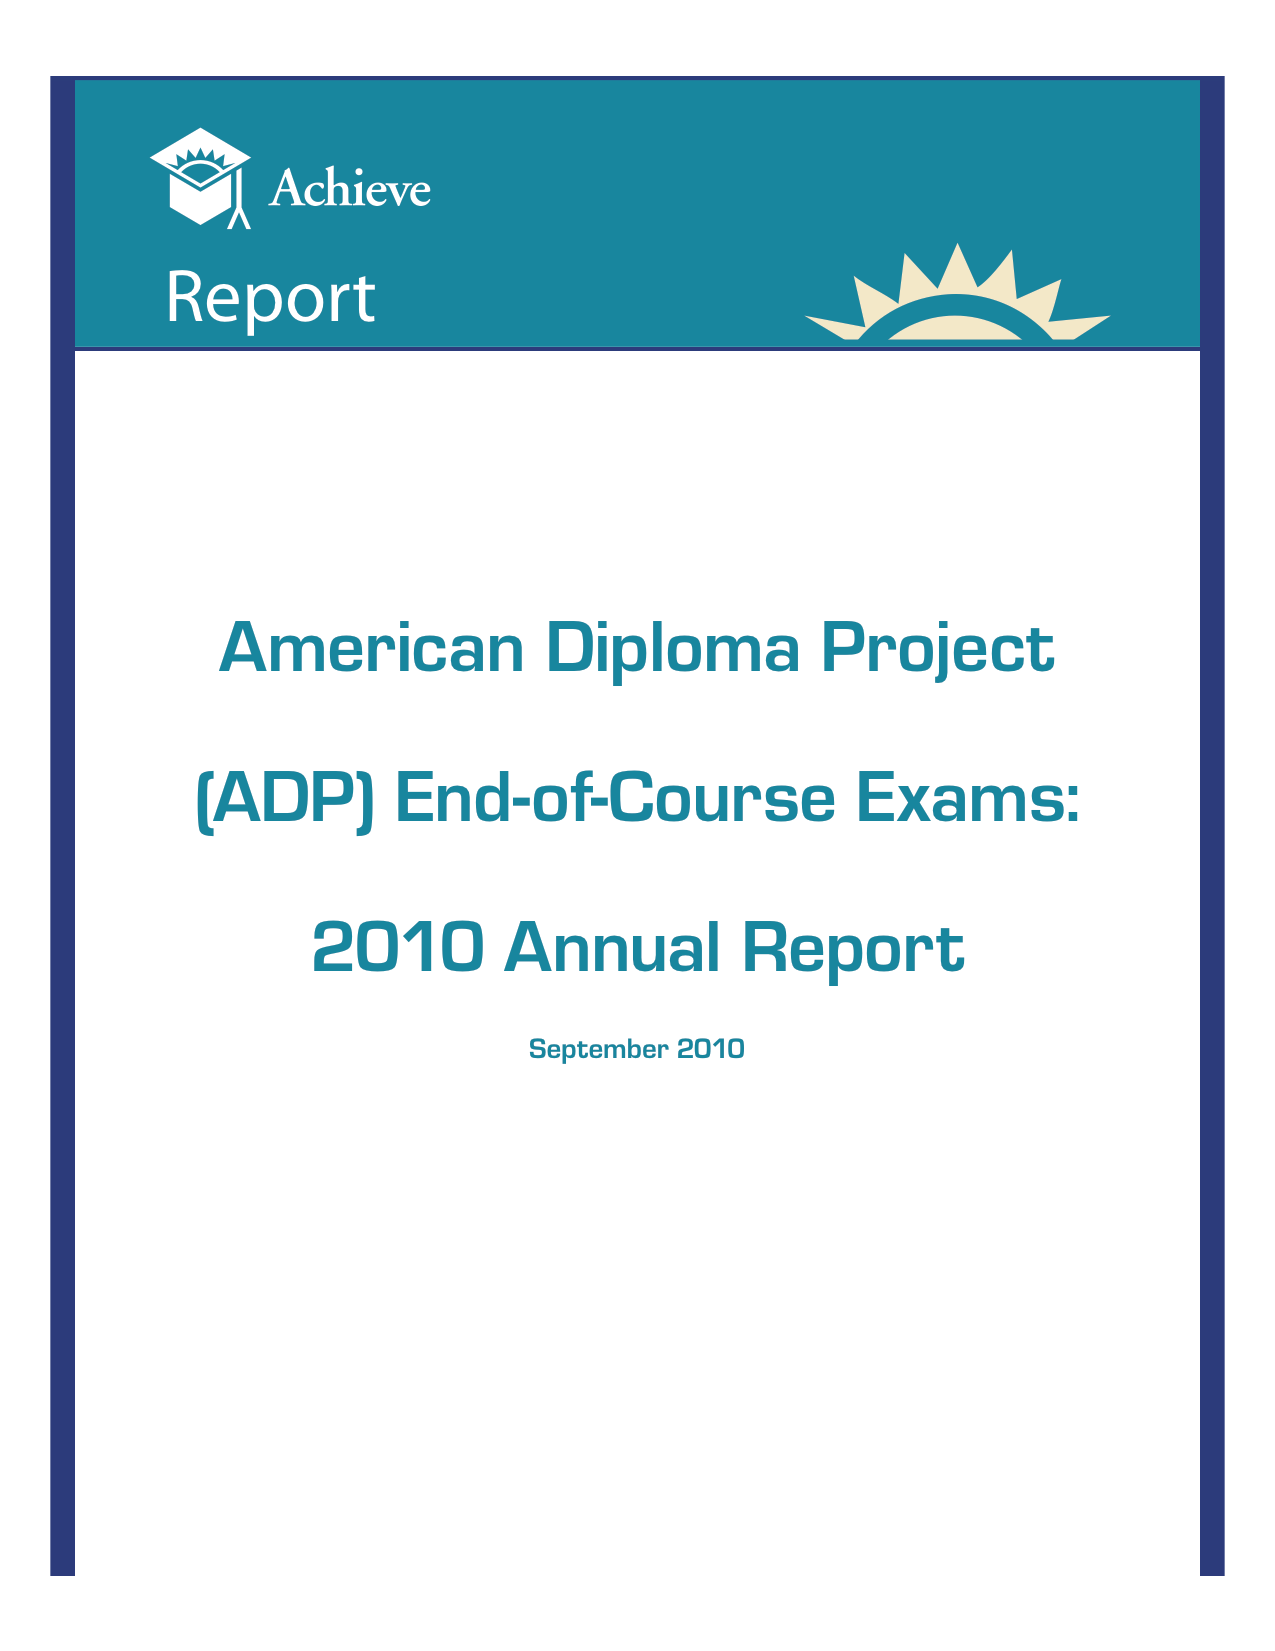 Cover of ADP End-of-Course Exams: 2010 Annual Report